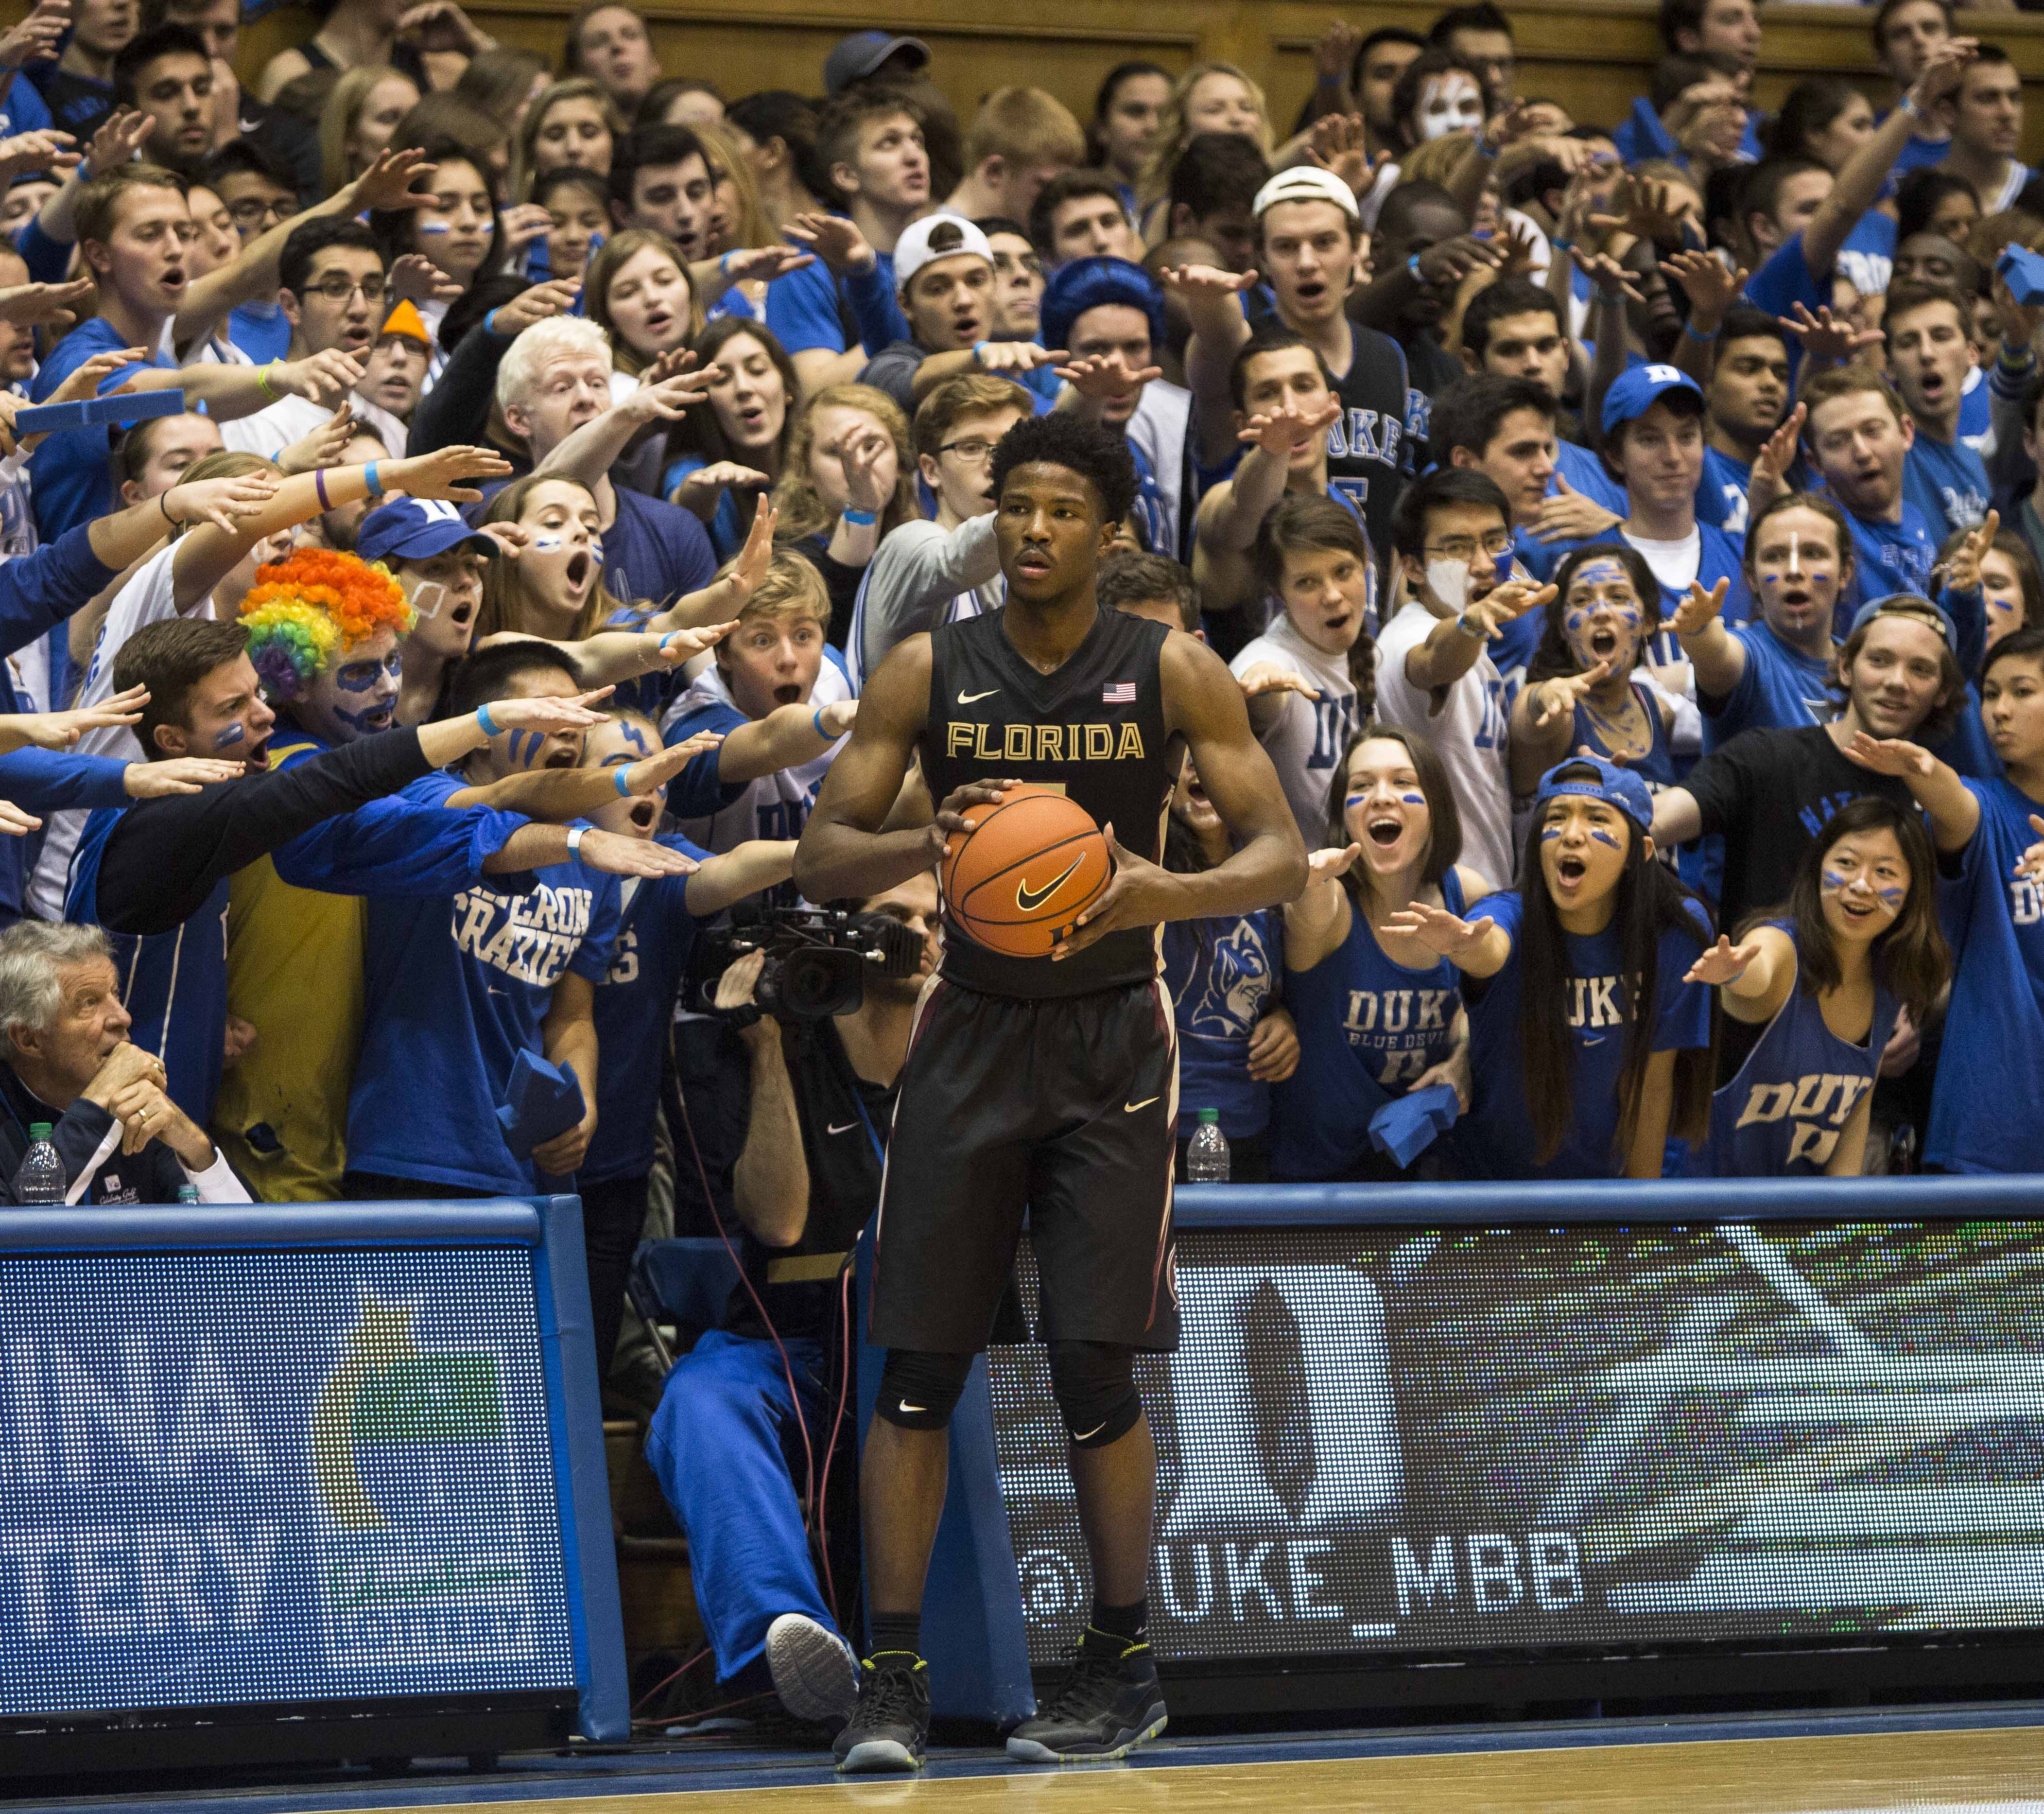 Florida State's Malik Beasley looks to throw in the ball as the Cameron Crazies shout in the background during the team's NCAA college basketball game against Duke in Durham, N.C., Thursday, Feb. 25, 2016. Duke defeated Florida State 80-65. (AP Photo/Ben